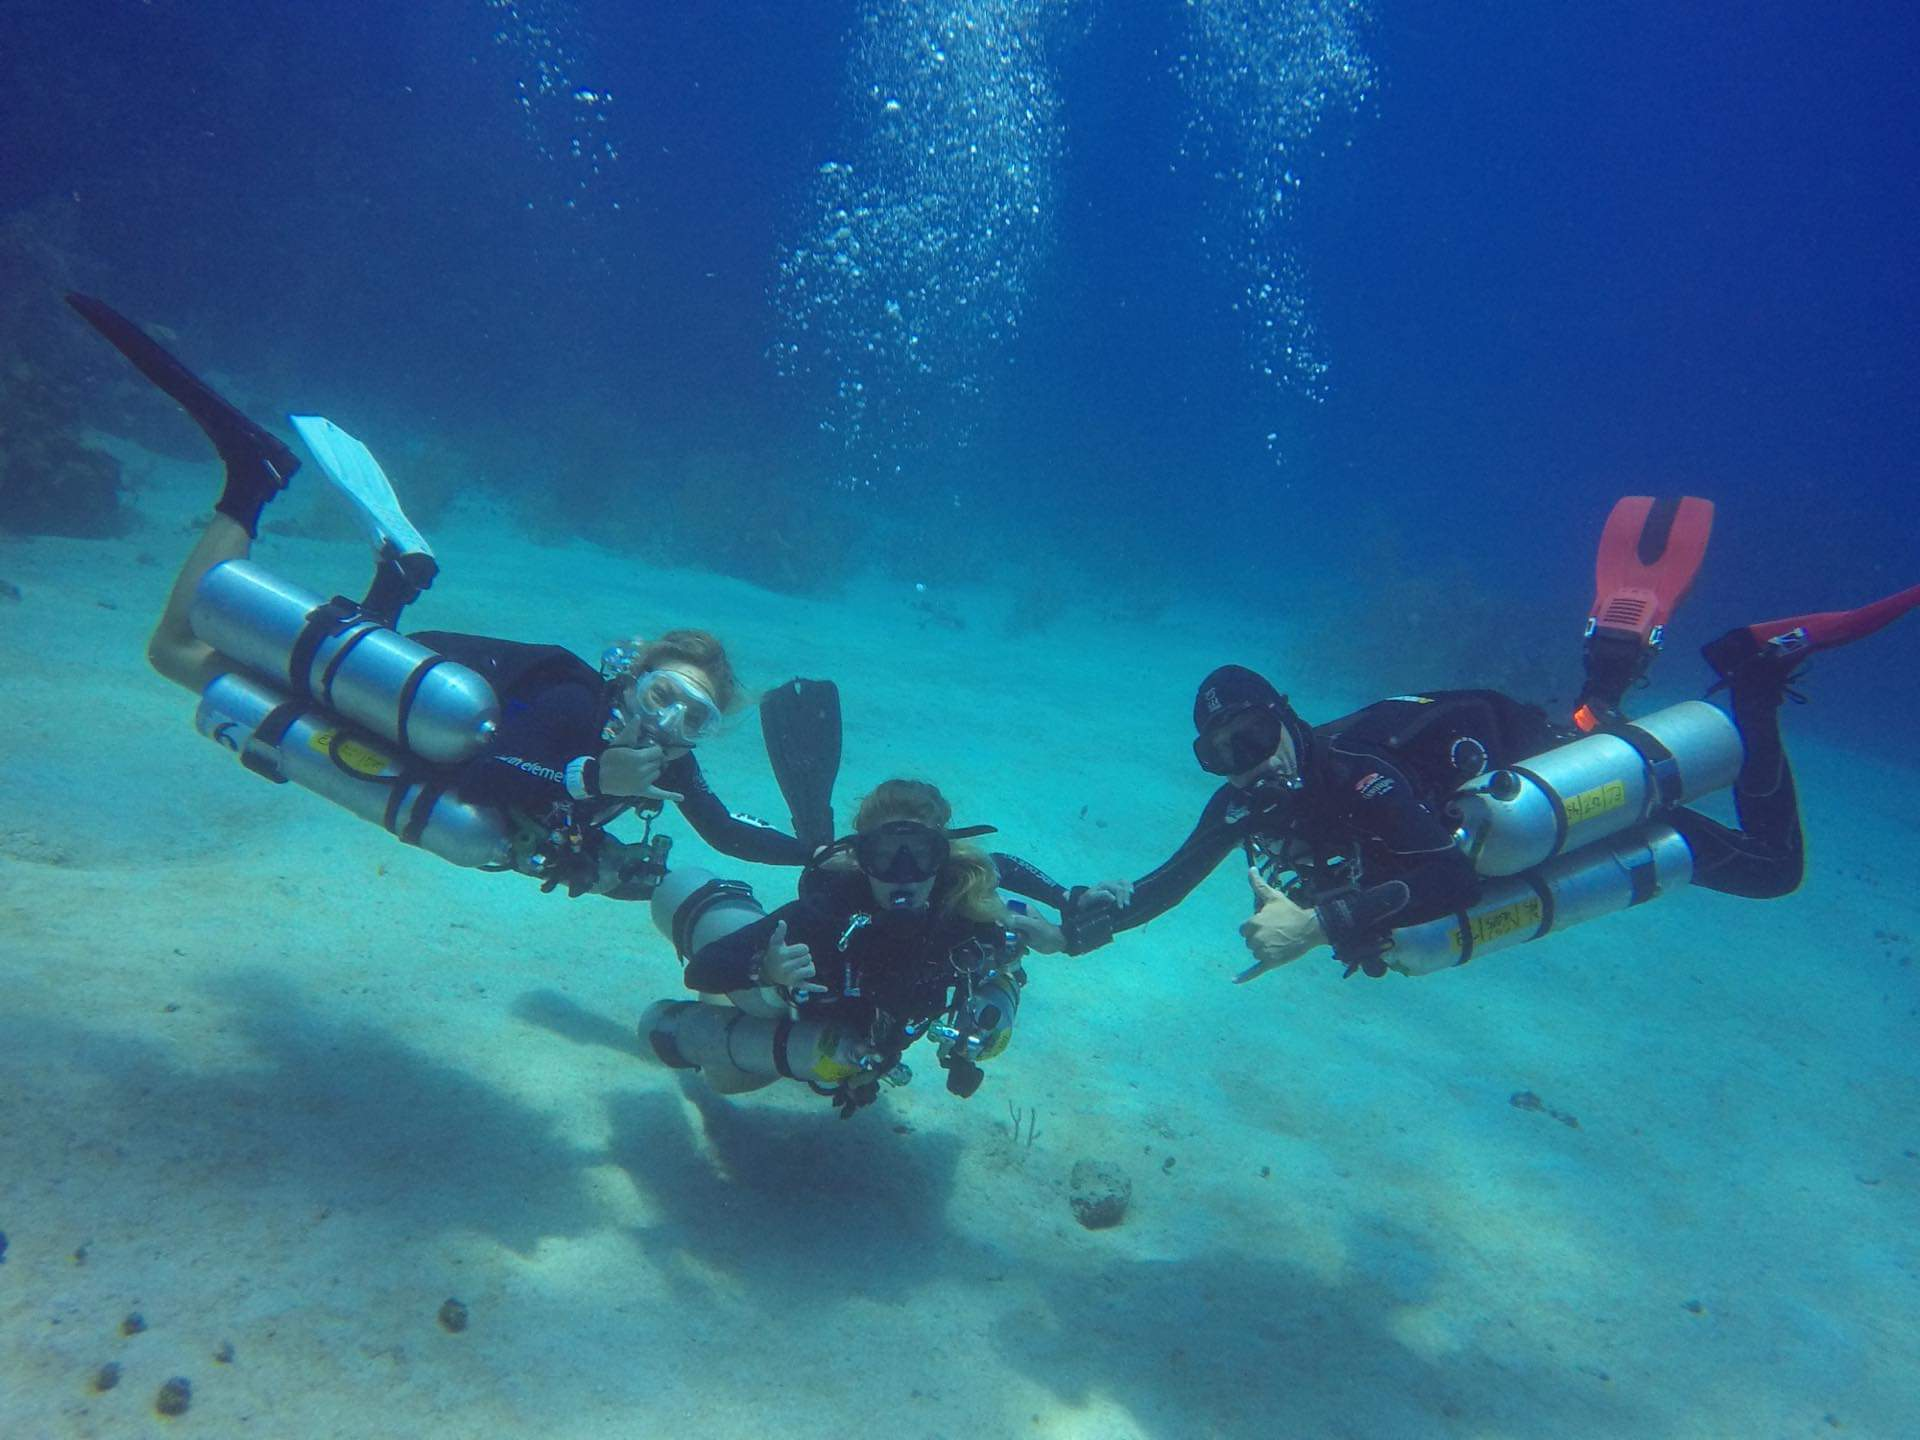 Starting out in Tec Diving